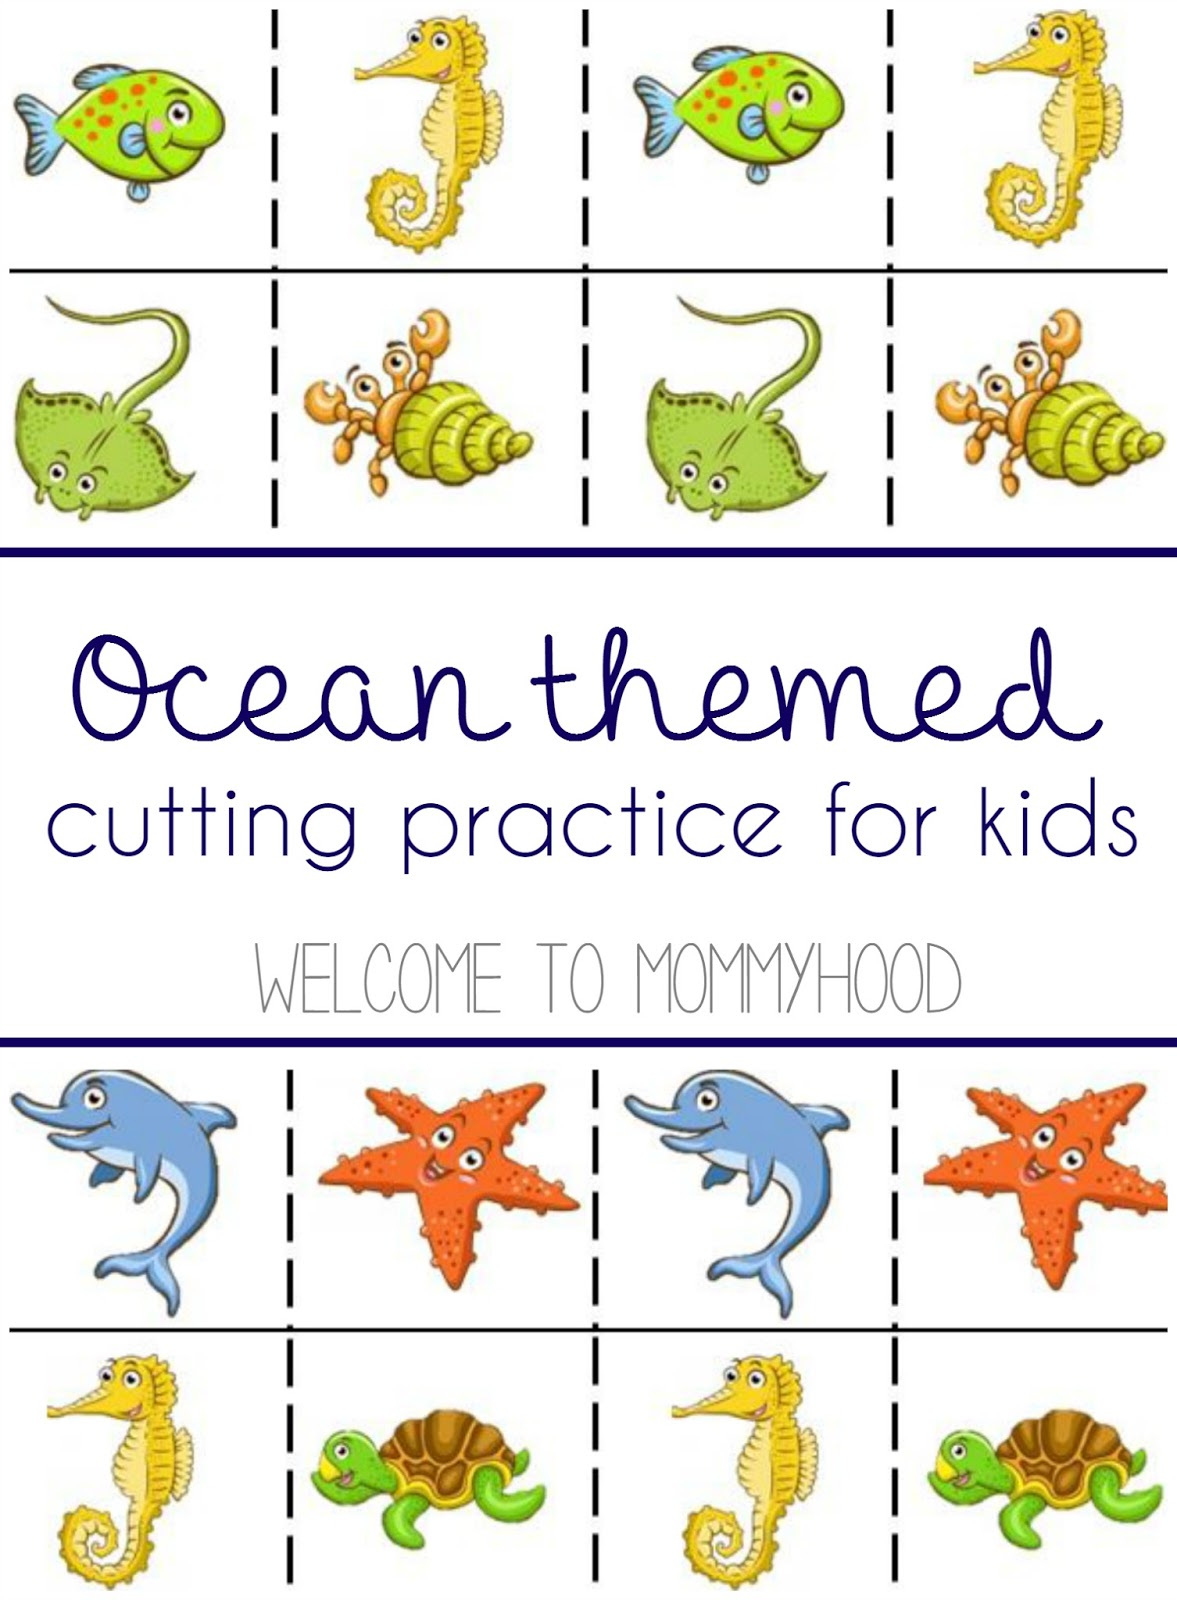 photo relating to Cutting Practice Printable named A lead in the direction of chopping pursuits and totally free ocean themed reducing